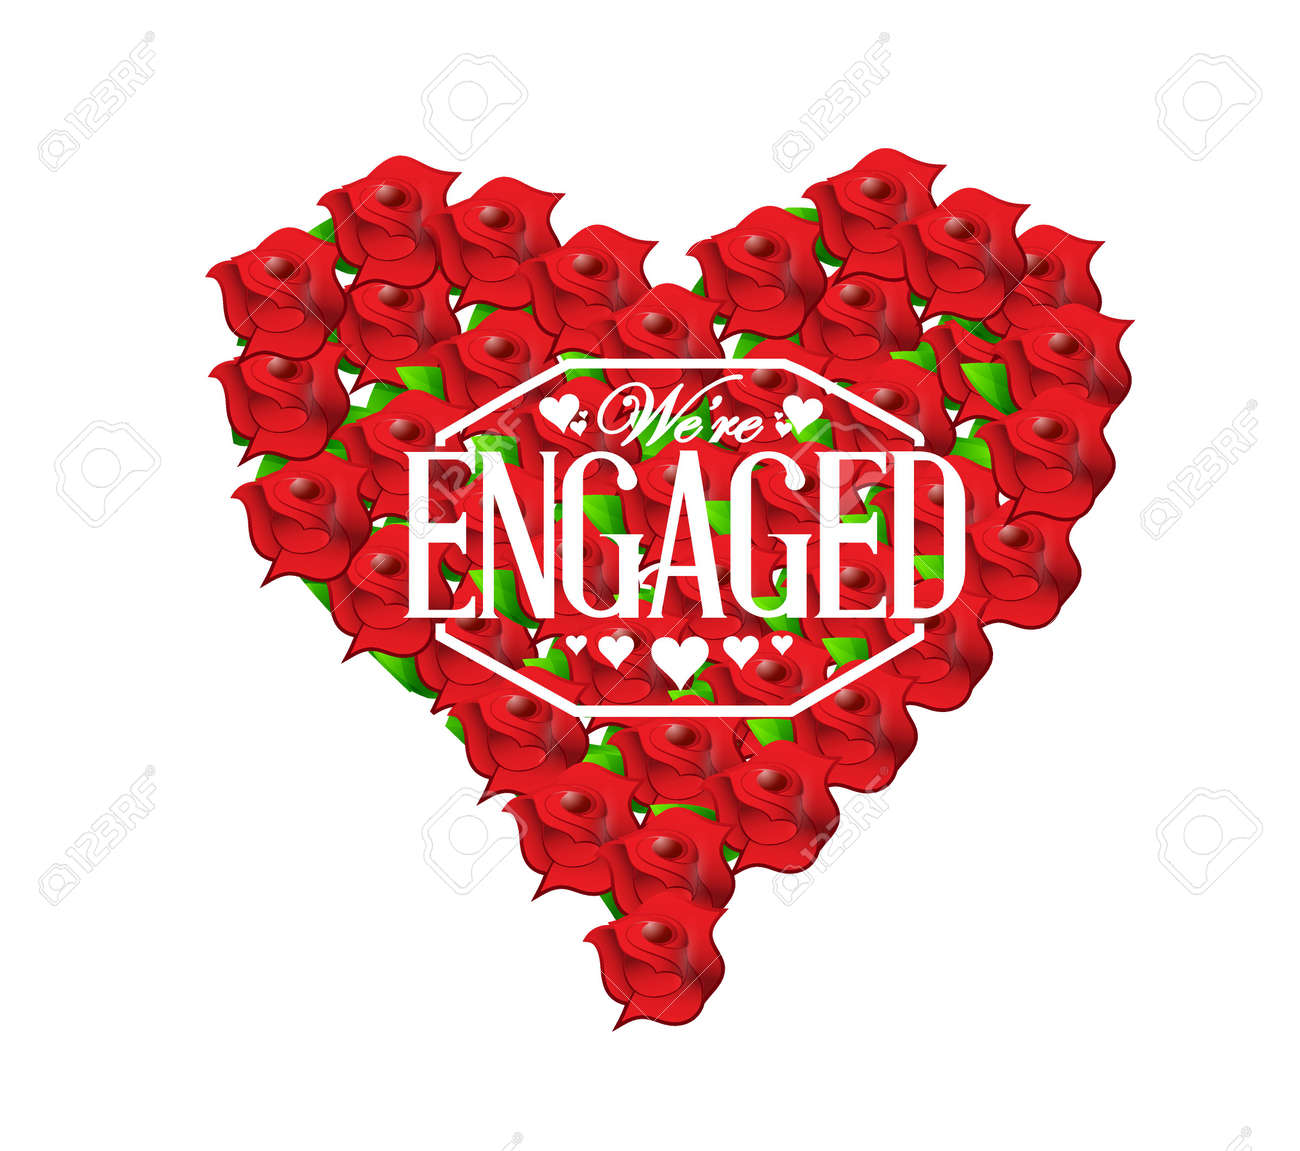 we are engaged sign stamp red roses heart illustration design